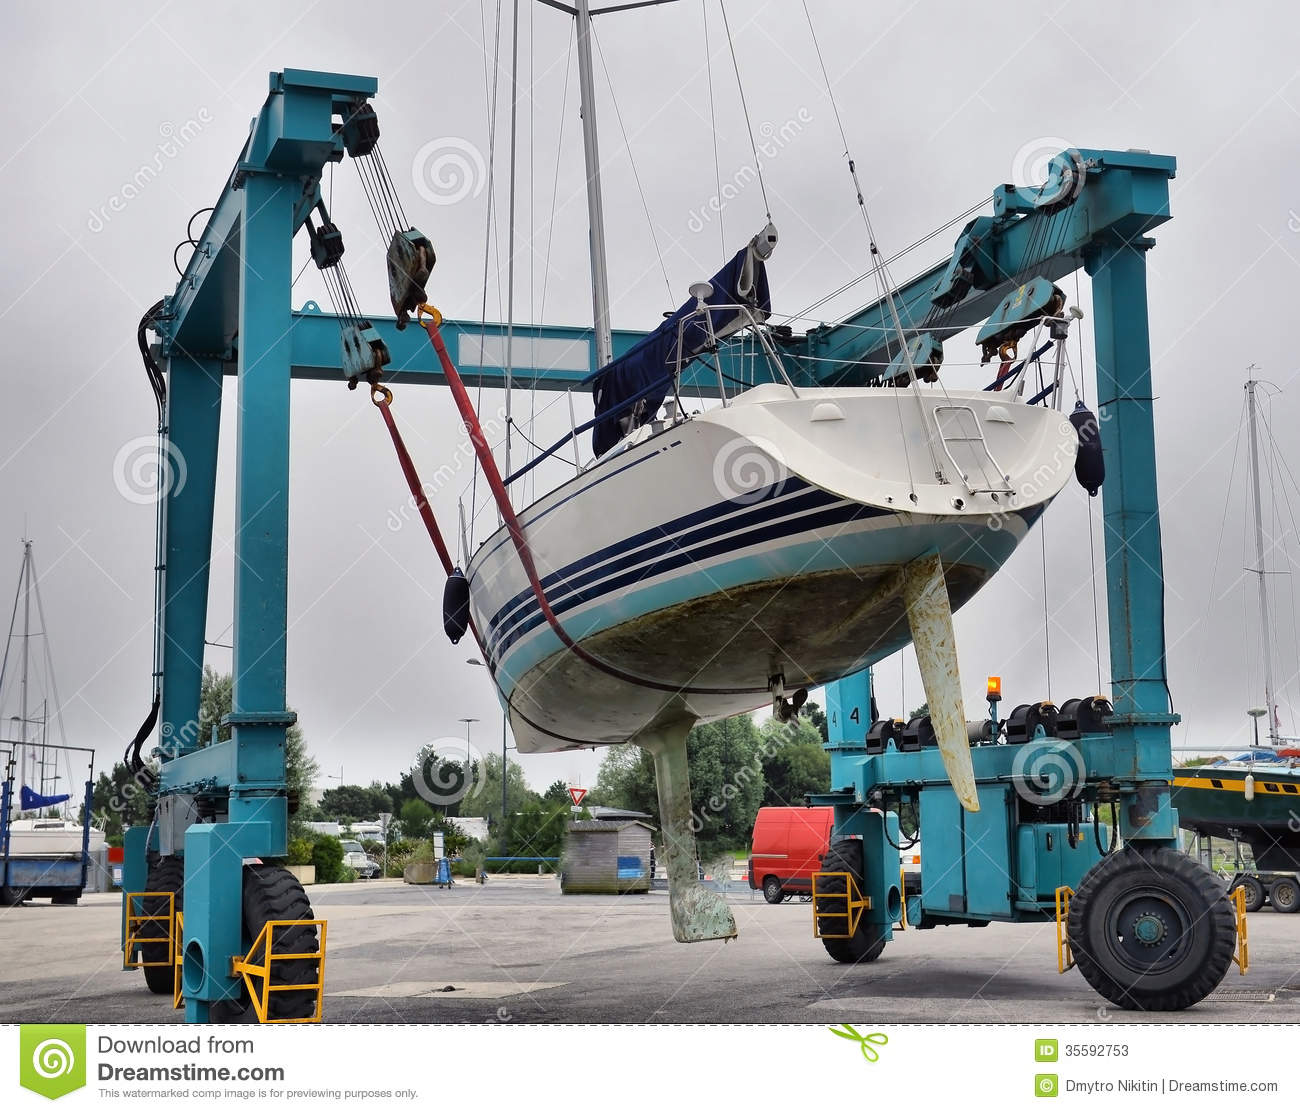 Crane Lifting Boats Stock Photos - Image: 35592753